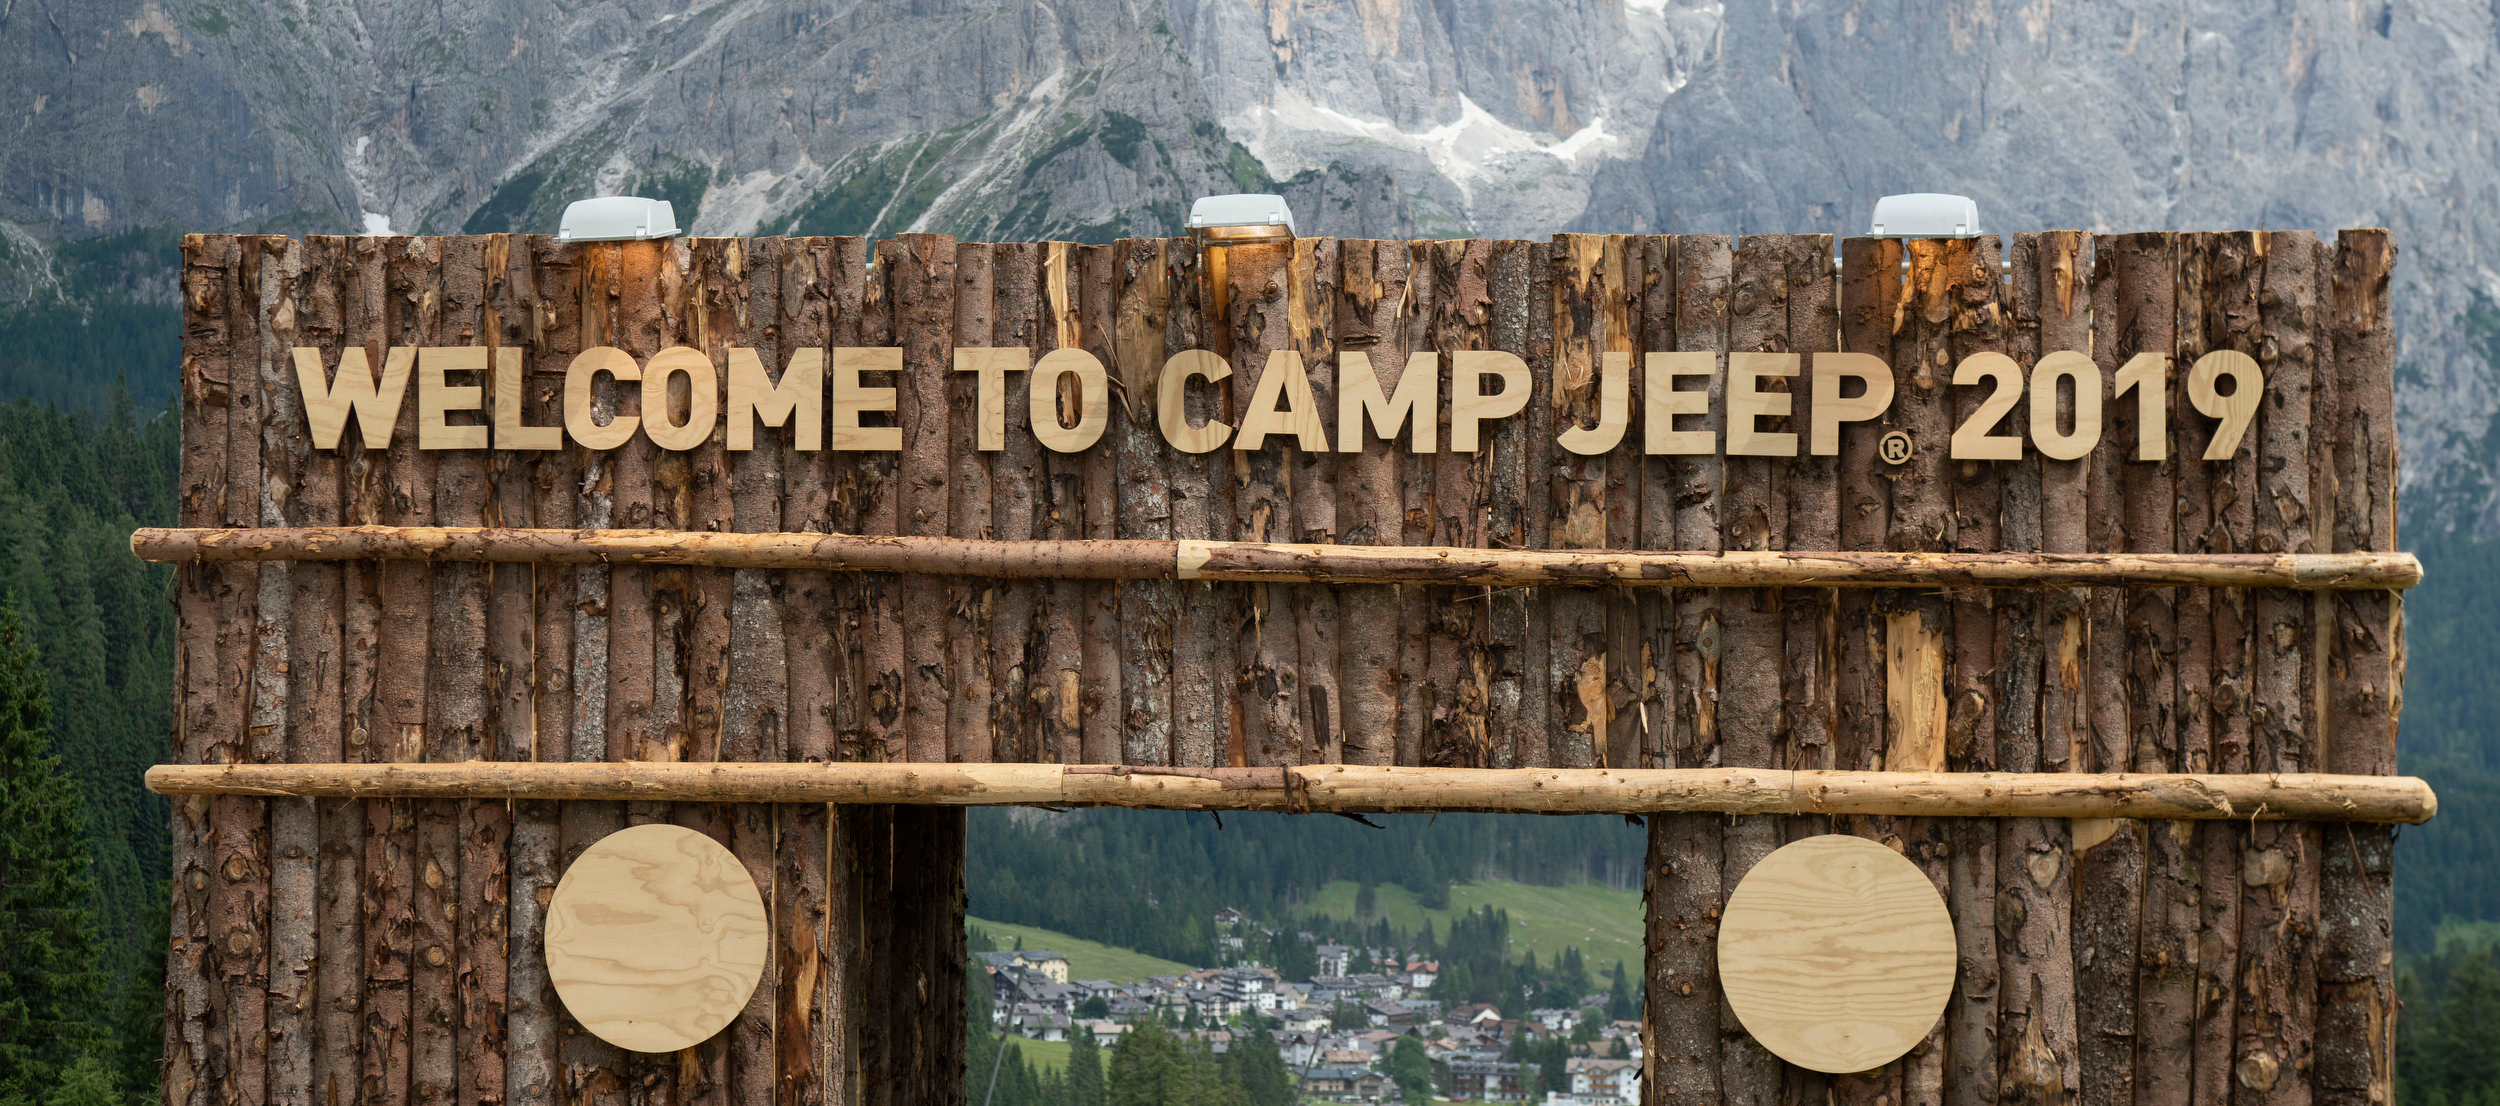 Welcome to Camp Jeep 2019